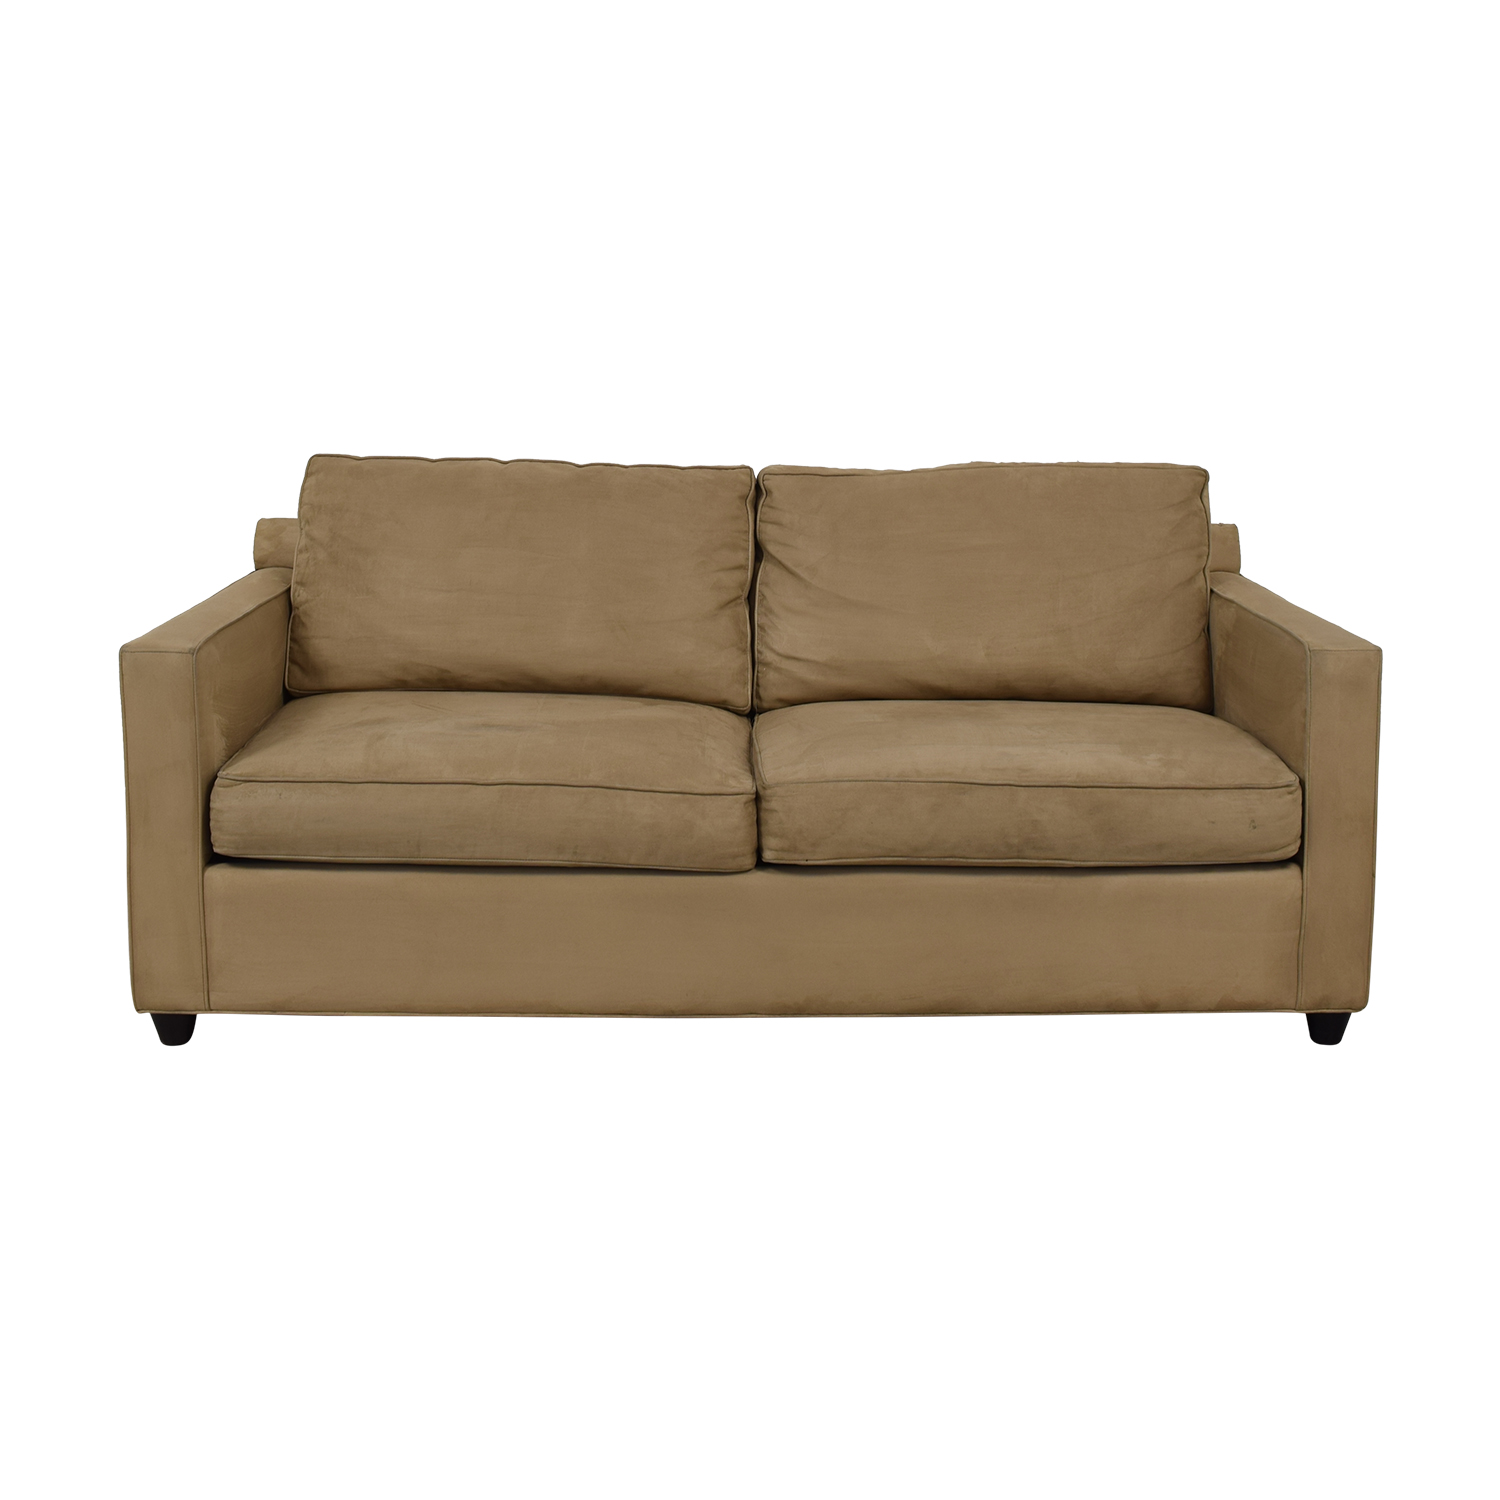 Crate & Barrel Crate & Barrel Beige Sofa nyc